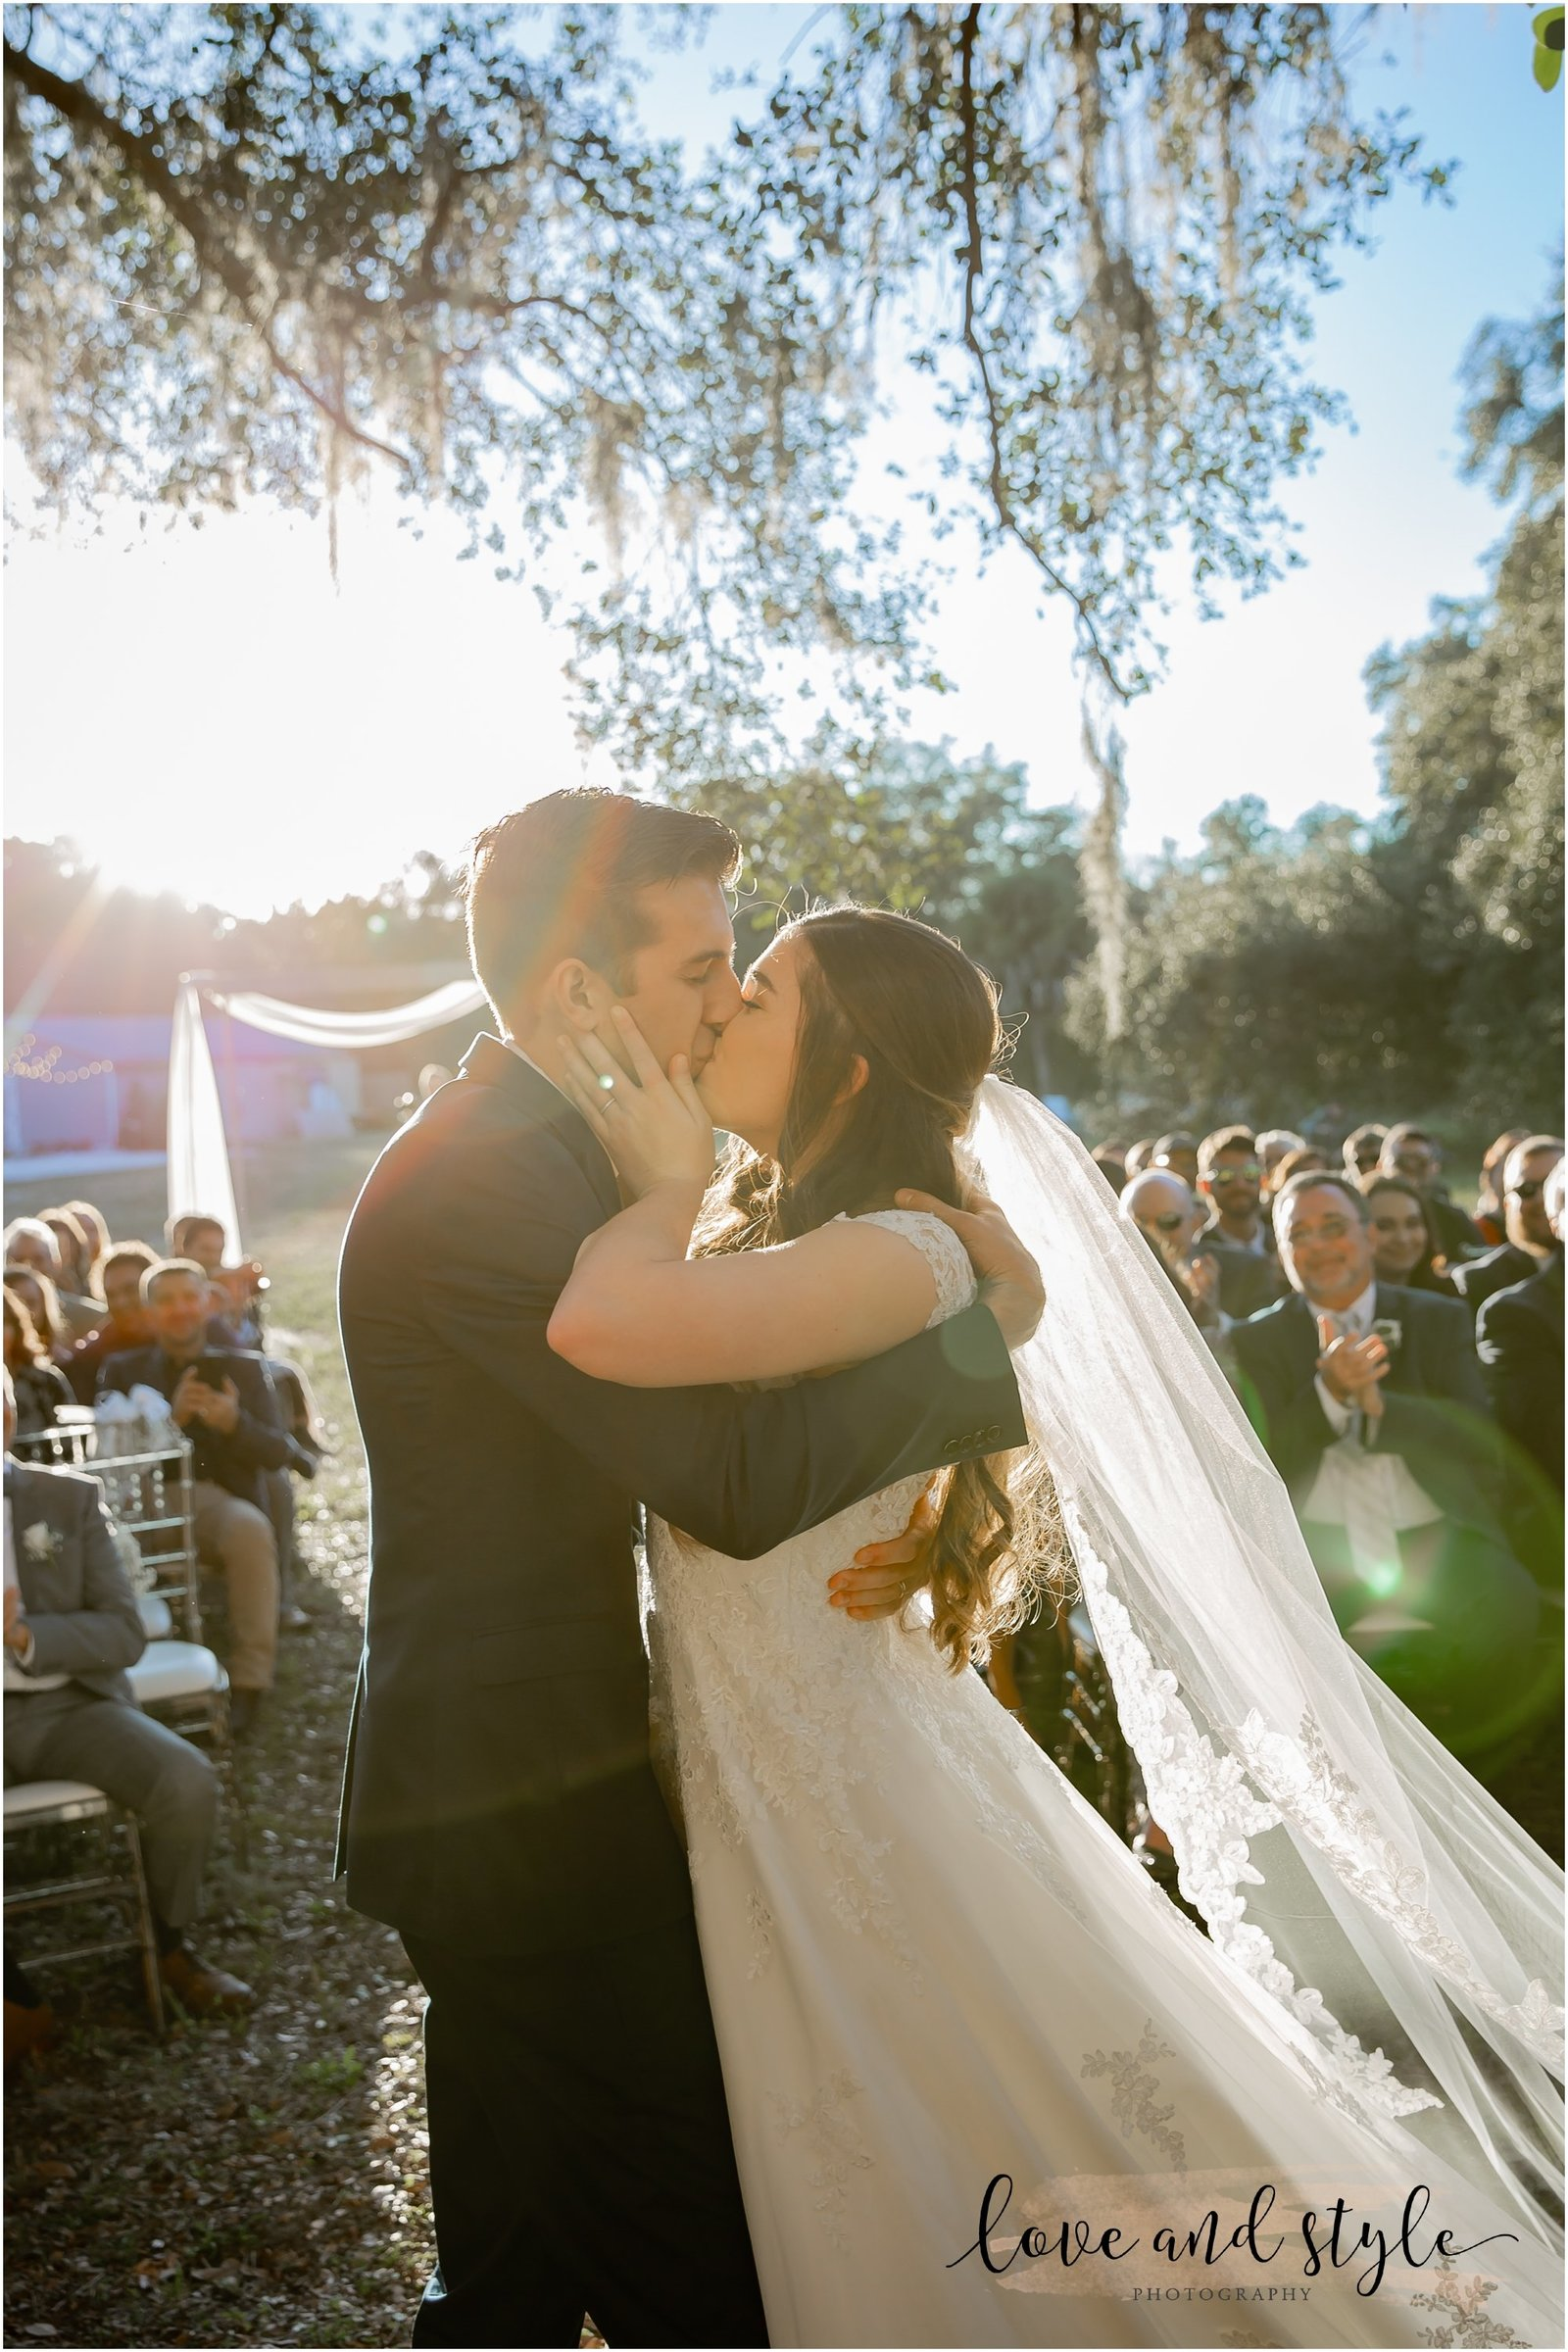 Bride and Groom kissing for the first time as husband and wife after the ceremony at The Barn at Chapel Creek Wedding venue in Venice, Florida